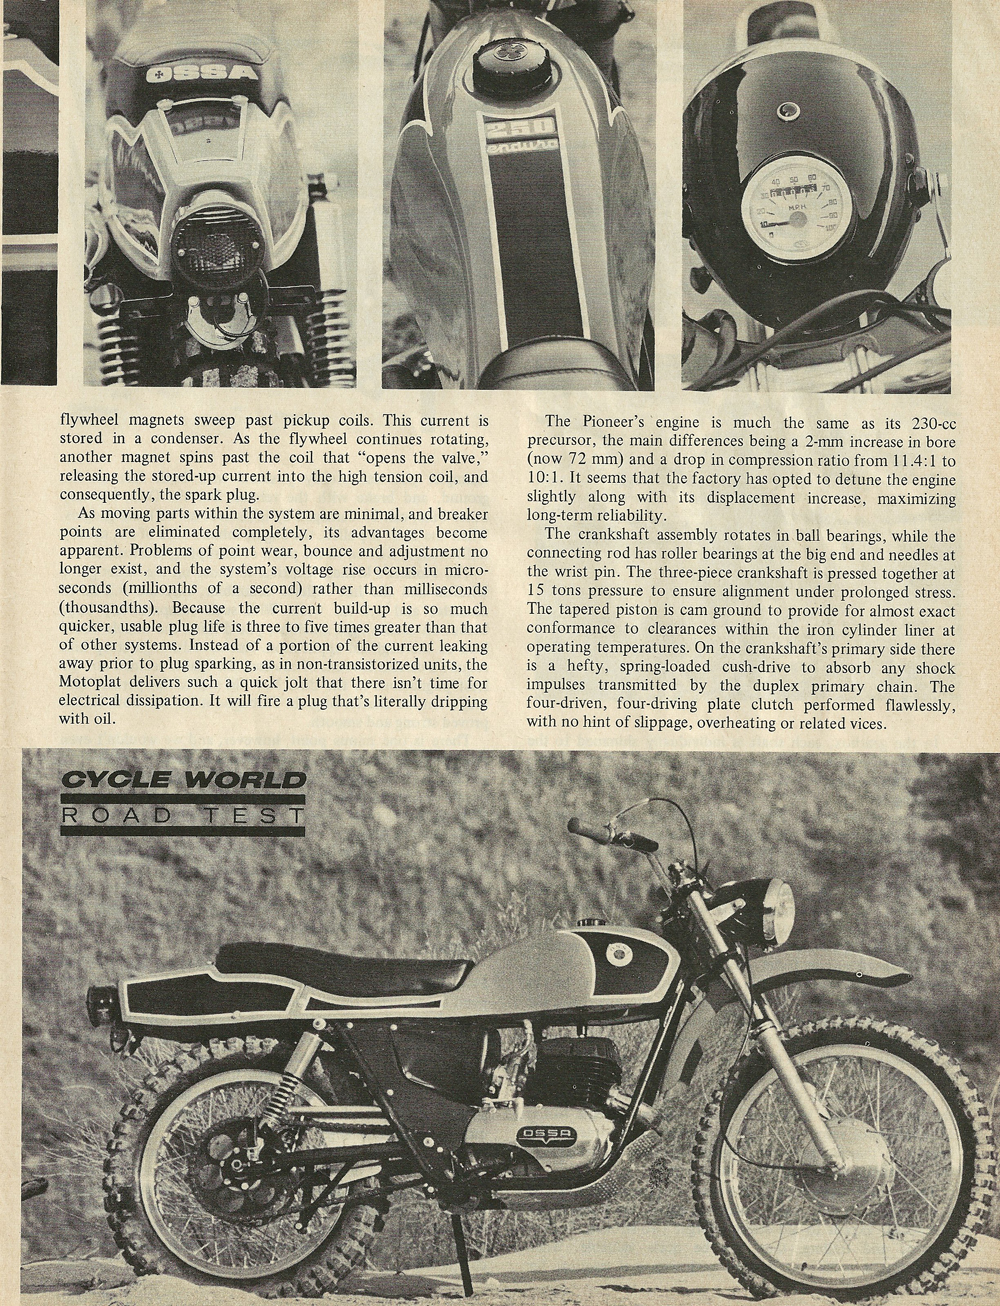 1969 Ossa Pioneer 250 road test 2.jpg